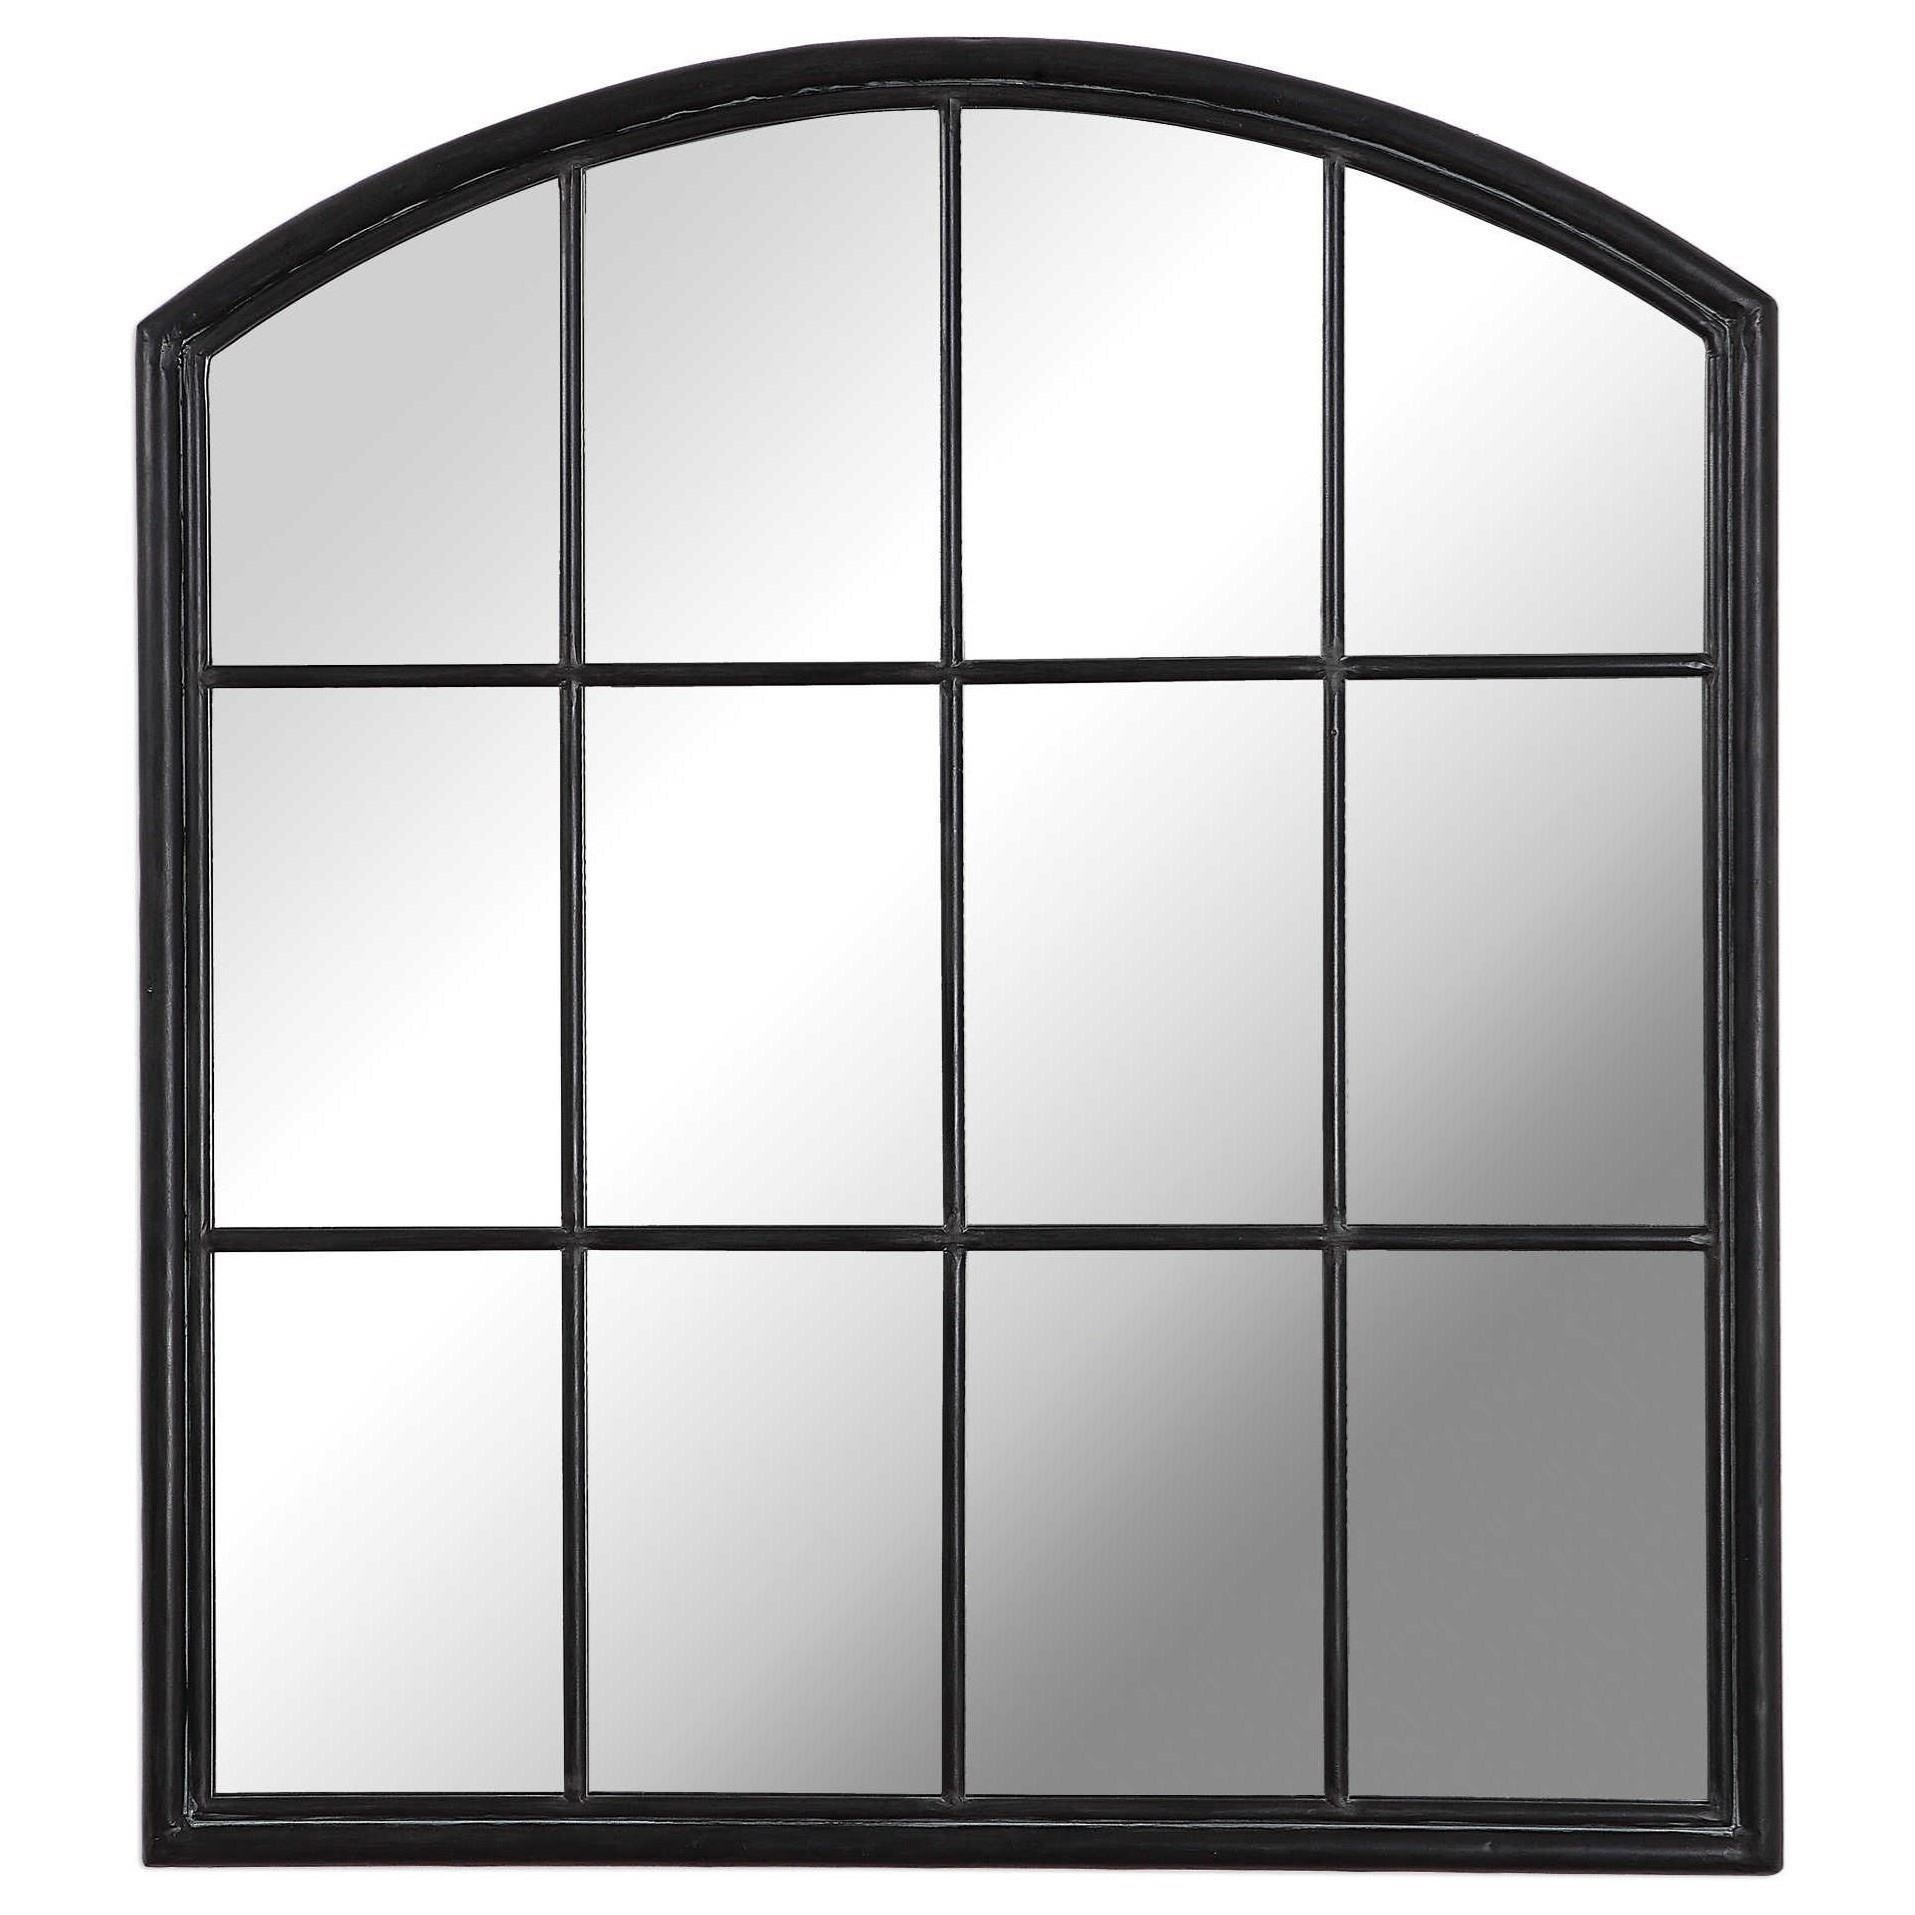 Arched Mirrors Lyda Aged Black Arch Mirror by Uttermost at Miller Waldrop Furniture and Decor